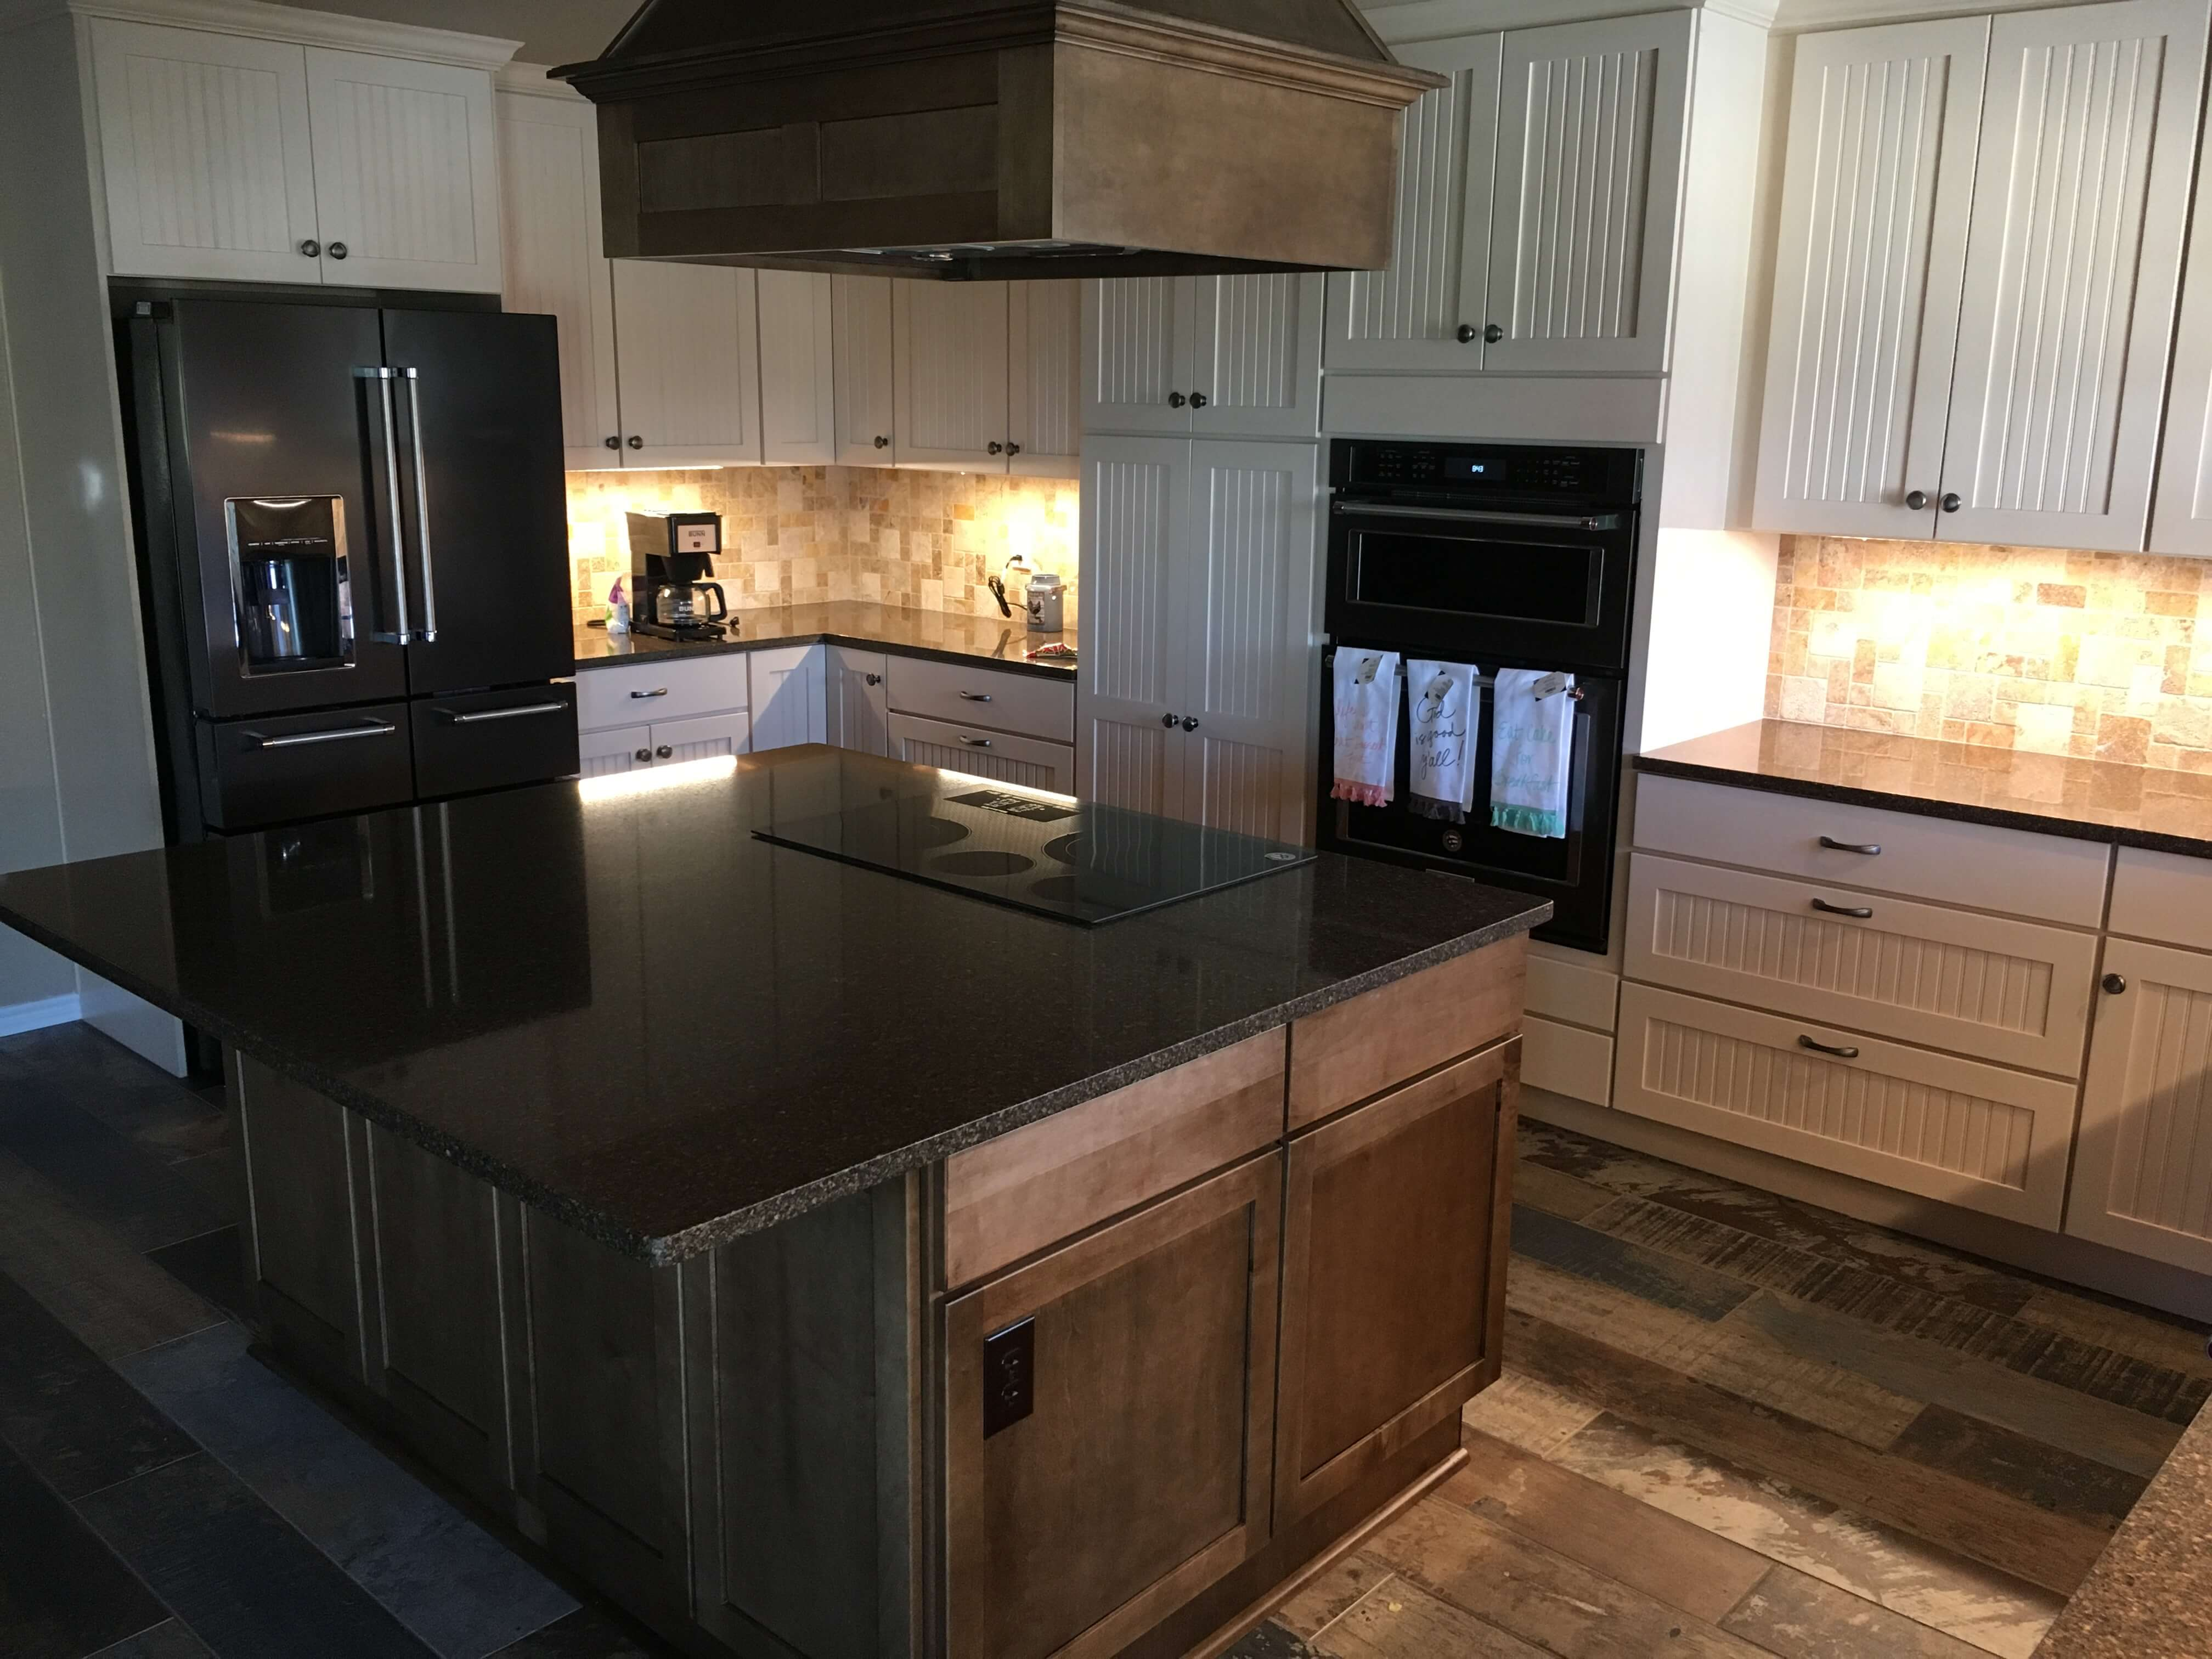 Peachy Tillery Remodeling Kitchen Bathroom Home And Outdoor Interior Design Ideas Gentotryabchikinfo